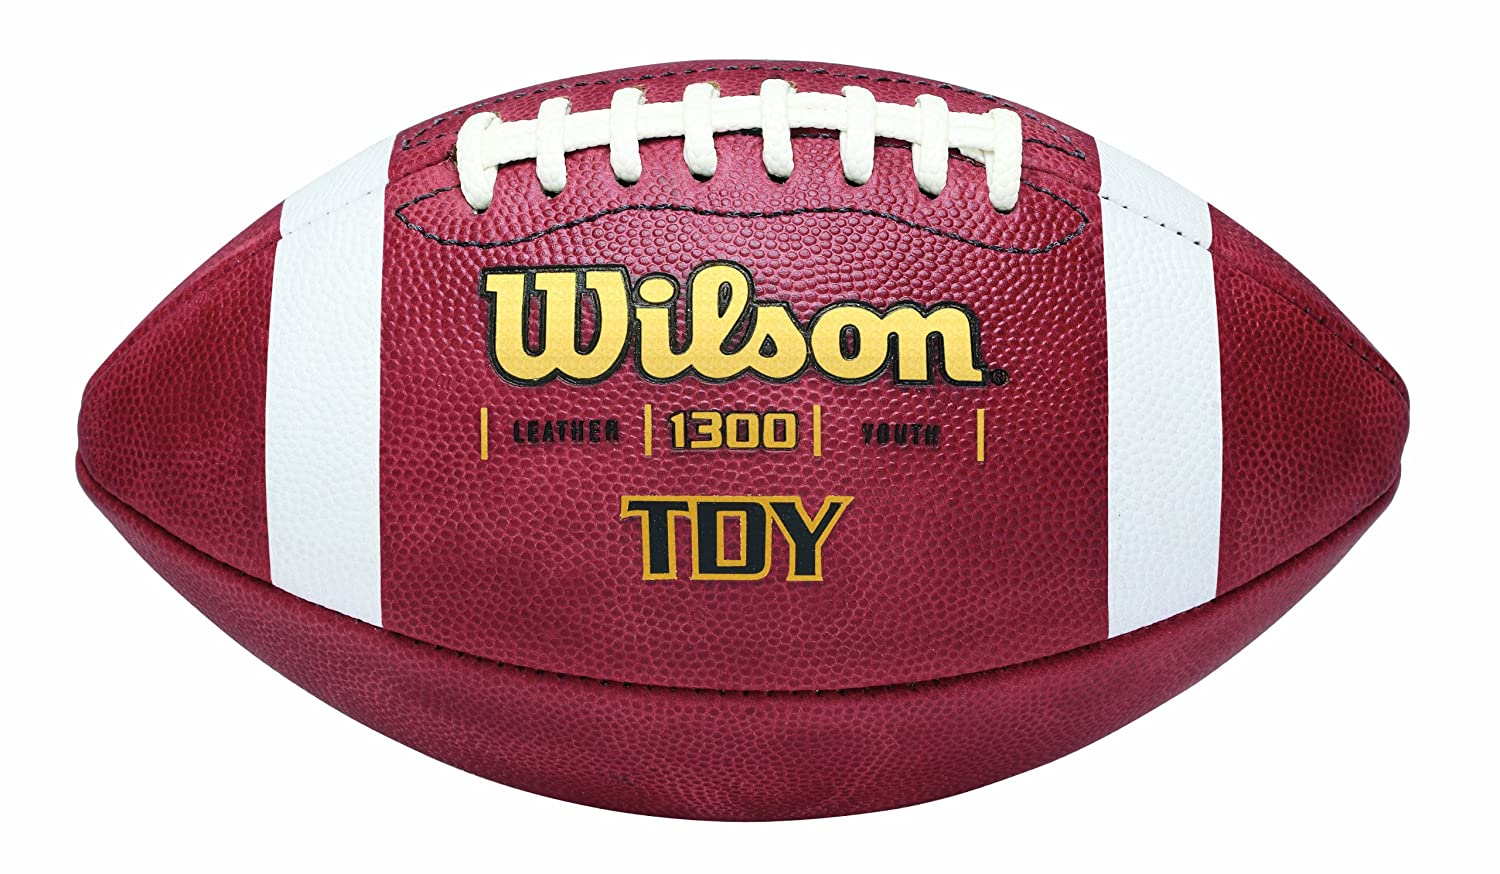 Wilson 3F1300 Tdy Leather Game Football, Youth WTF1300B